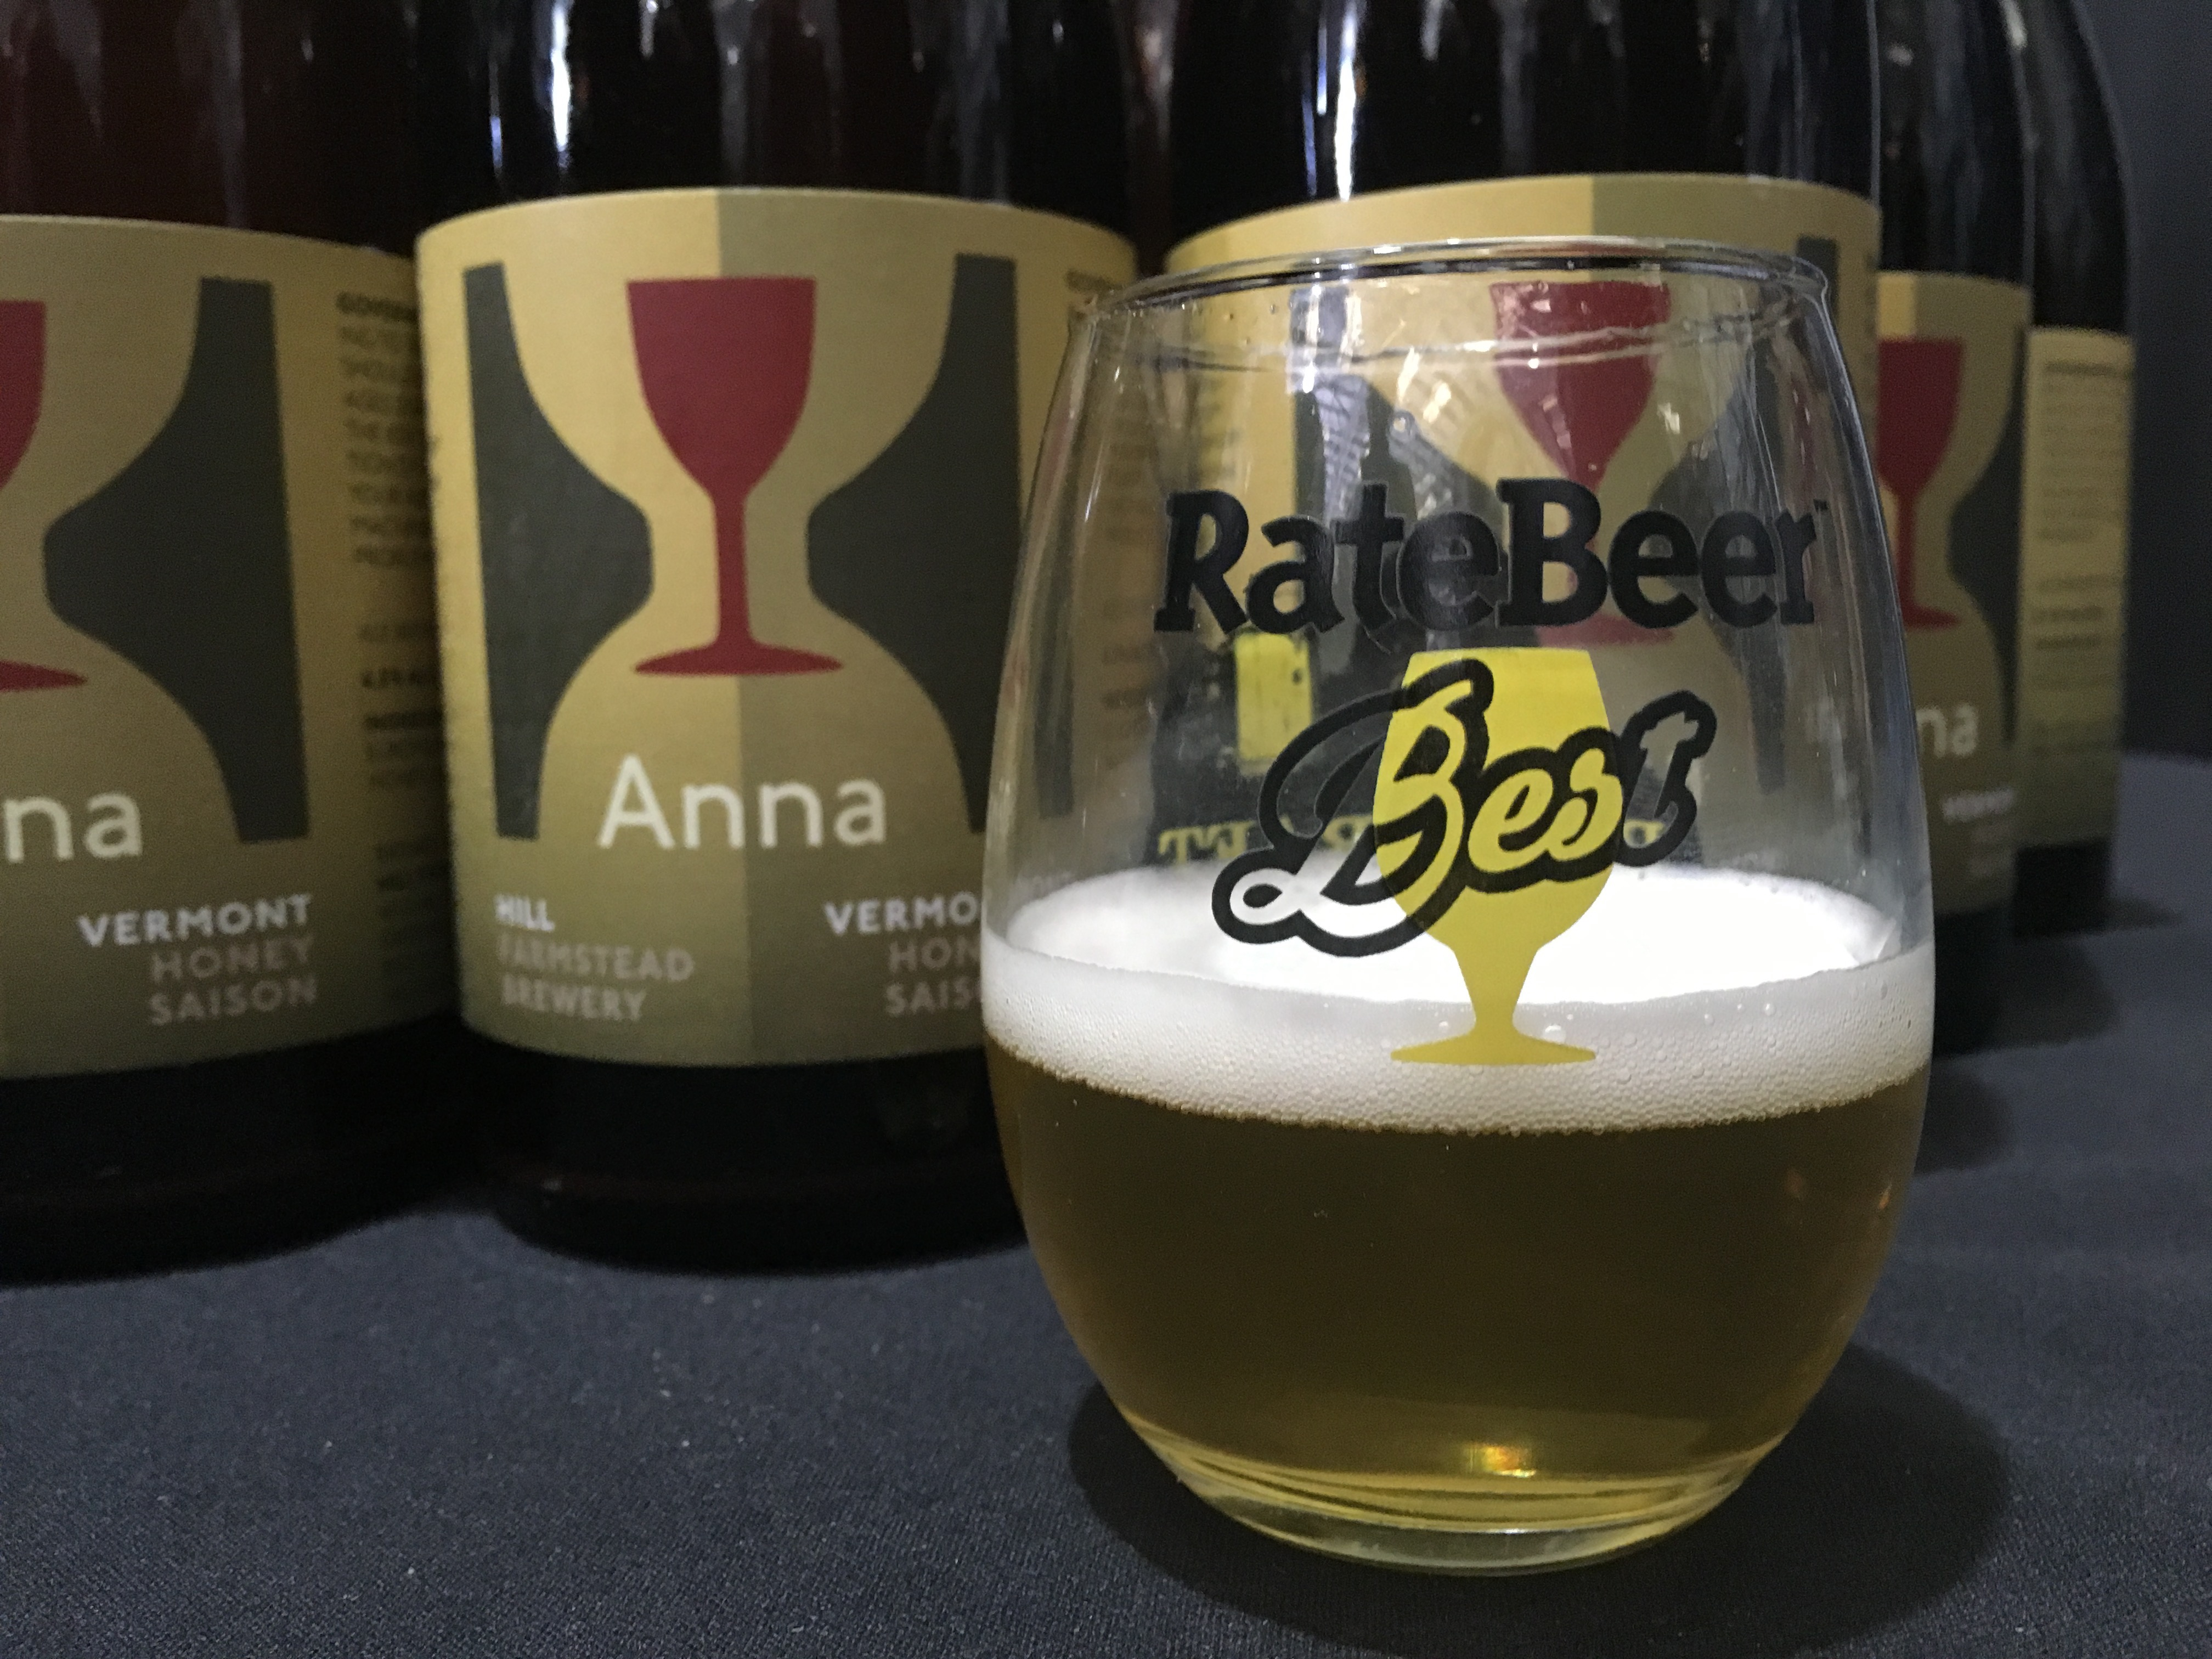 Hill Farmstead Anna at 2016 RateBeer Best Festival.